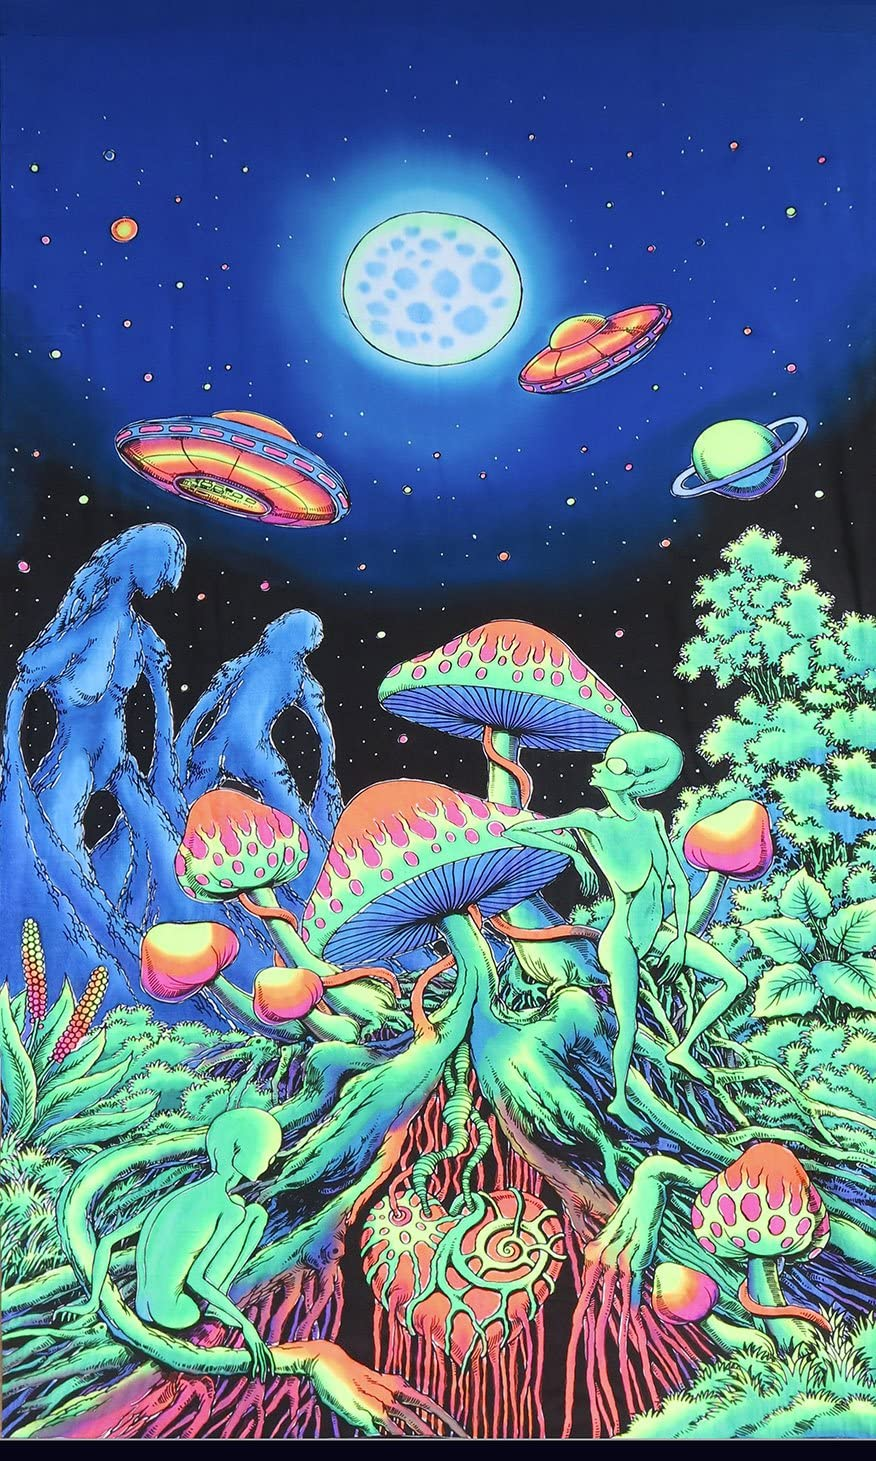 Space Tribe Psychedelic Tapestry Alien Shrooms - Hand-painted and  silkscreen batik wall-hanging - UV active wall-hanging -Trippy wall art -  Black light active trippy tapestry - Fantasy tapestry Amazoncouk  Kitchen  Home